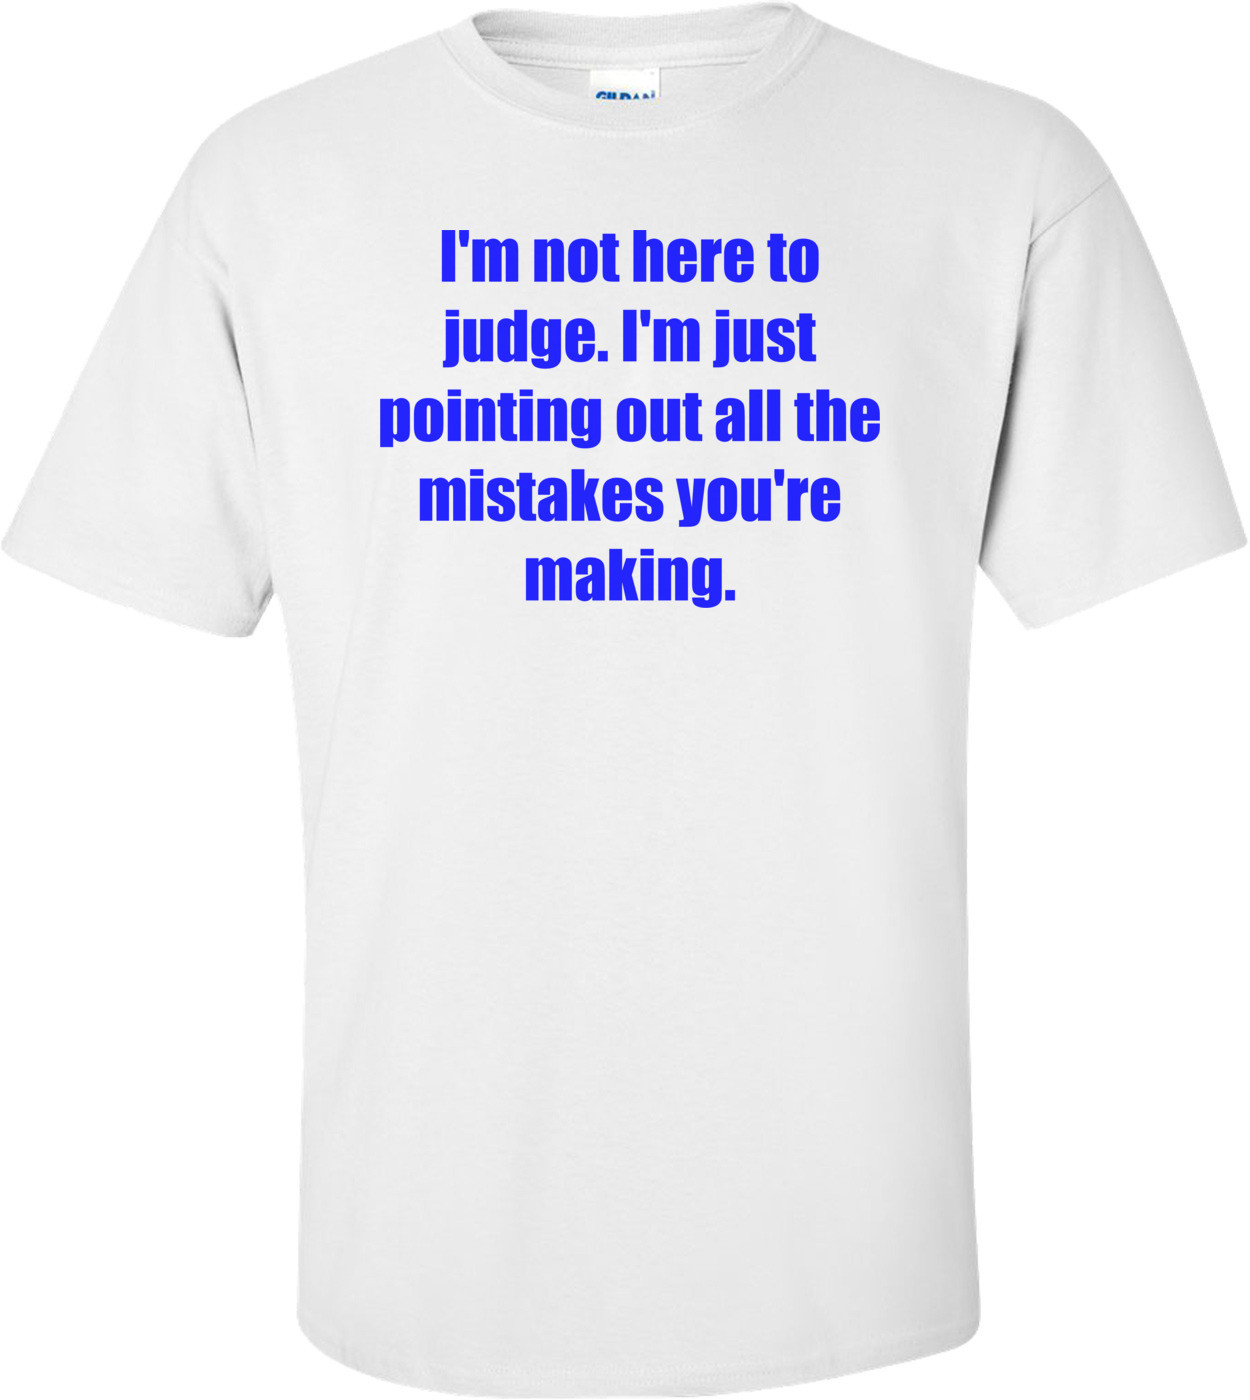 I'm not here to judge. I'm just pointing out all the mistakes you're making. Shirt